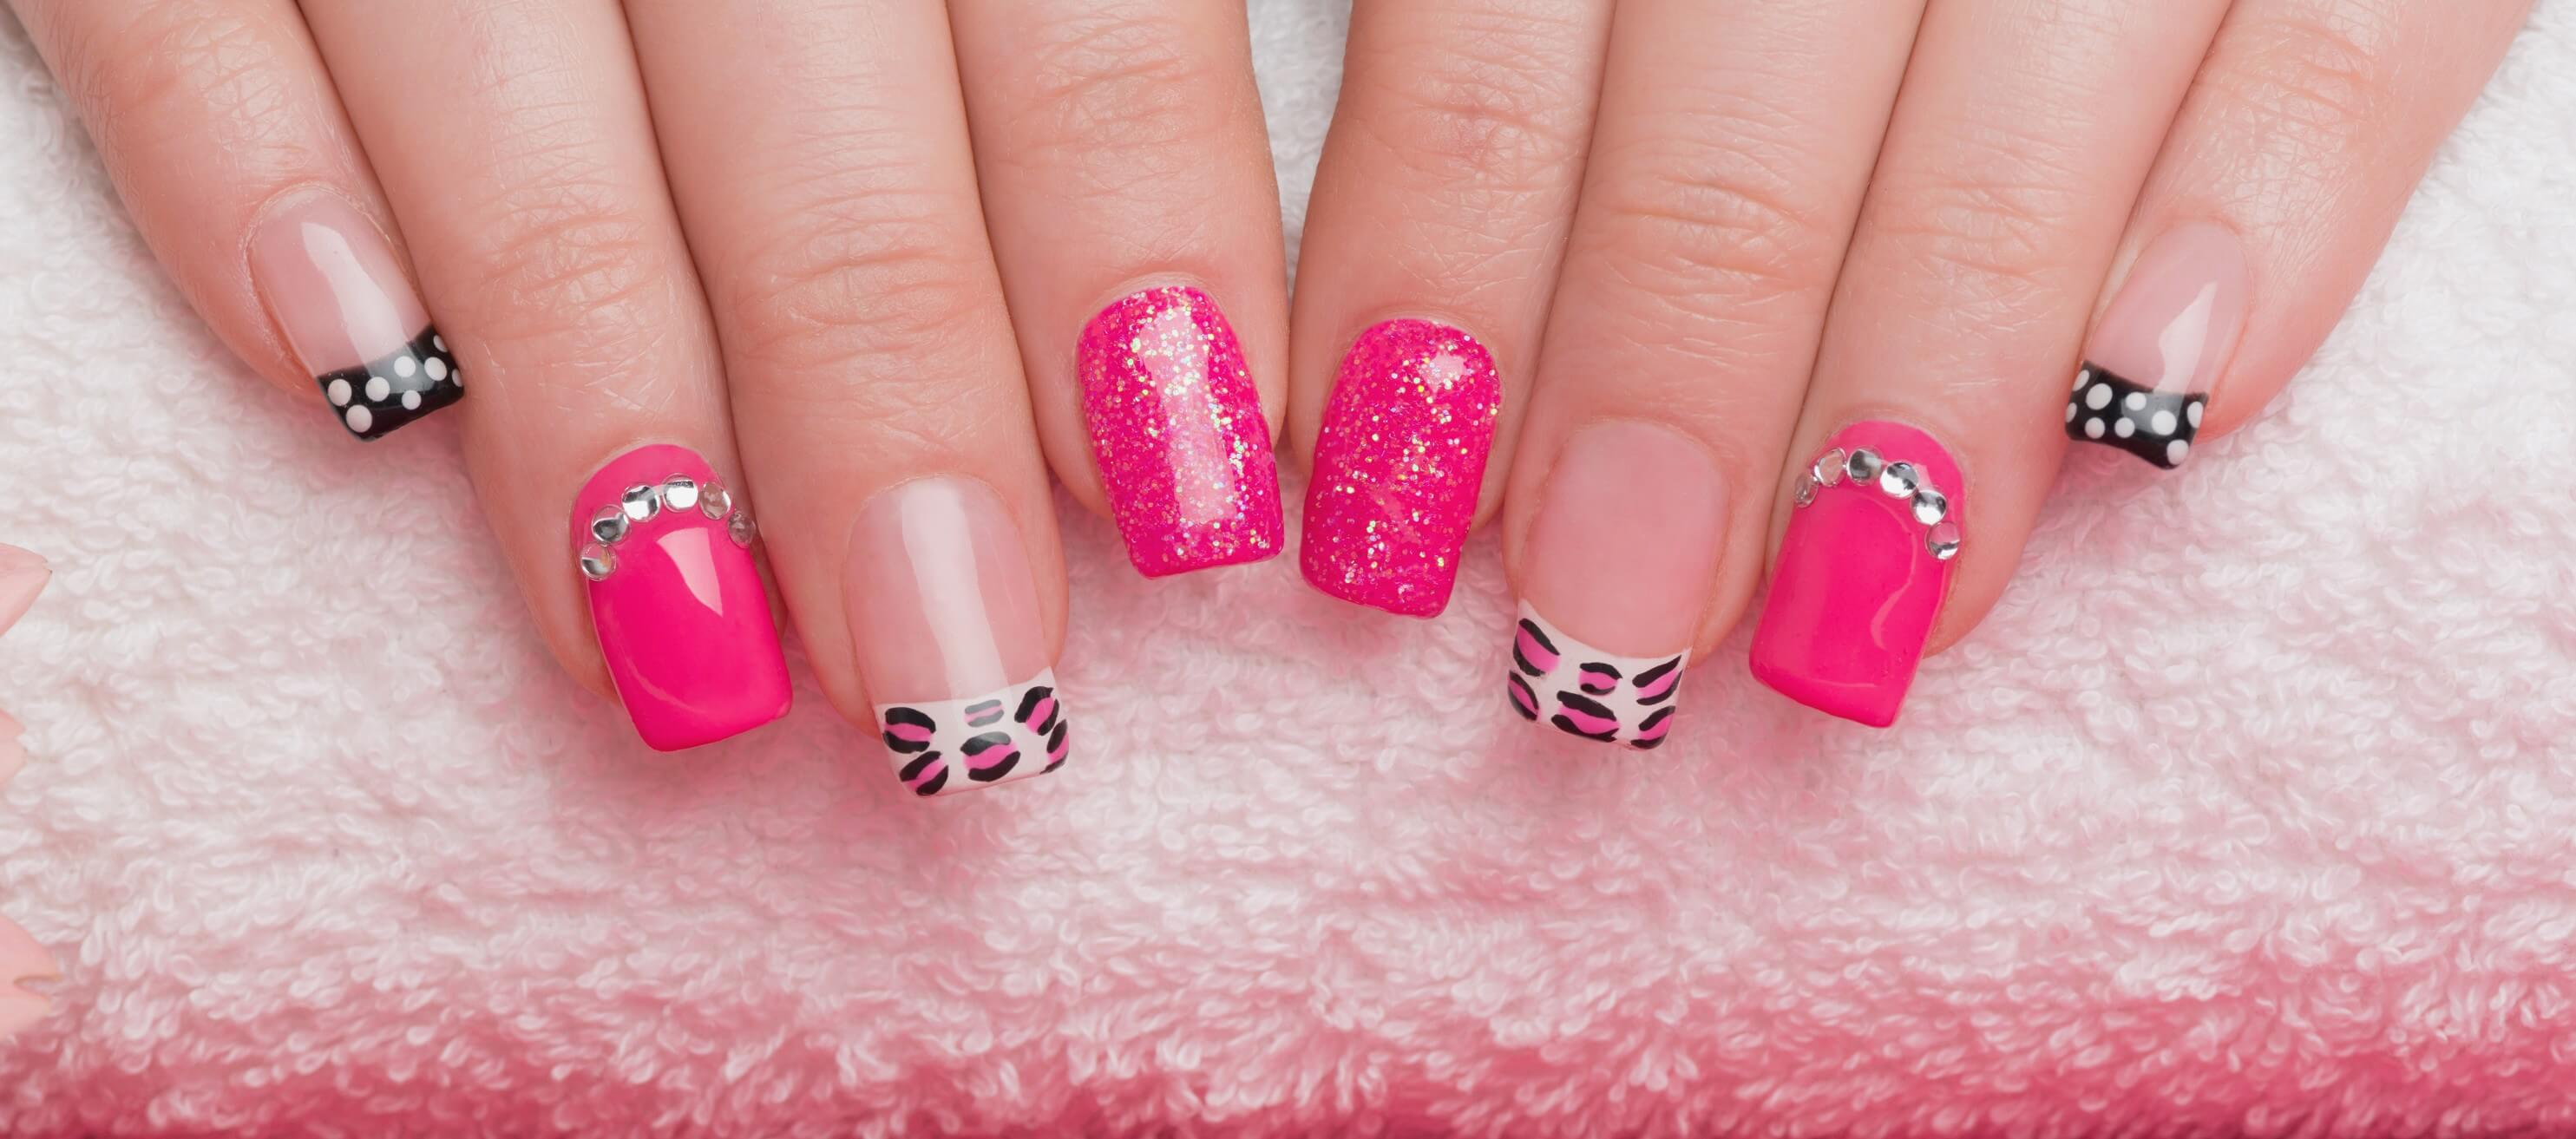 24 Unique Nail Art Designs Of 2018 To Enhance Your Nails Beauty on French Homes